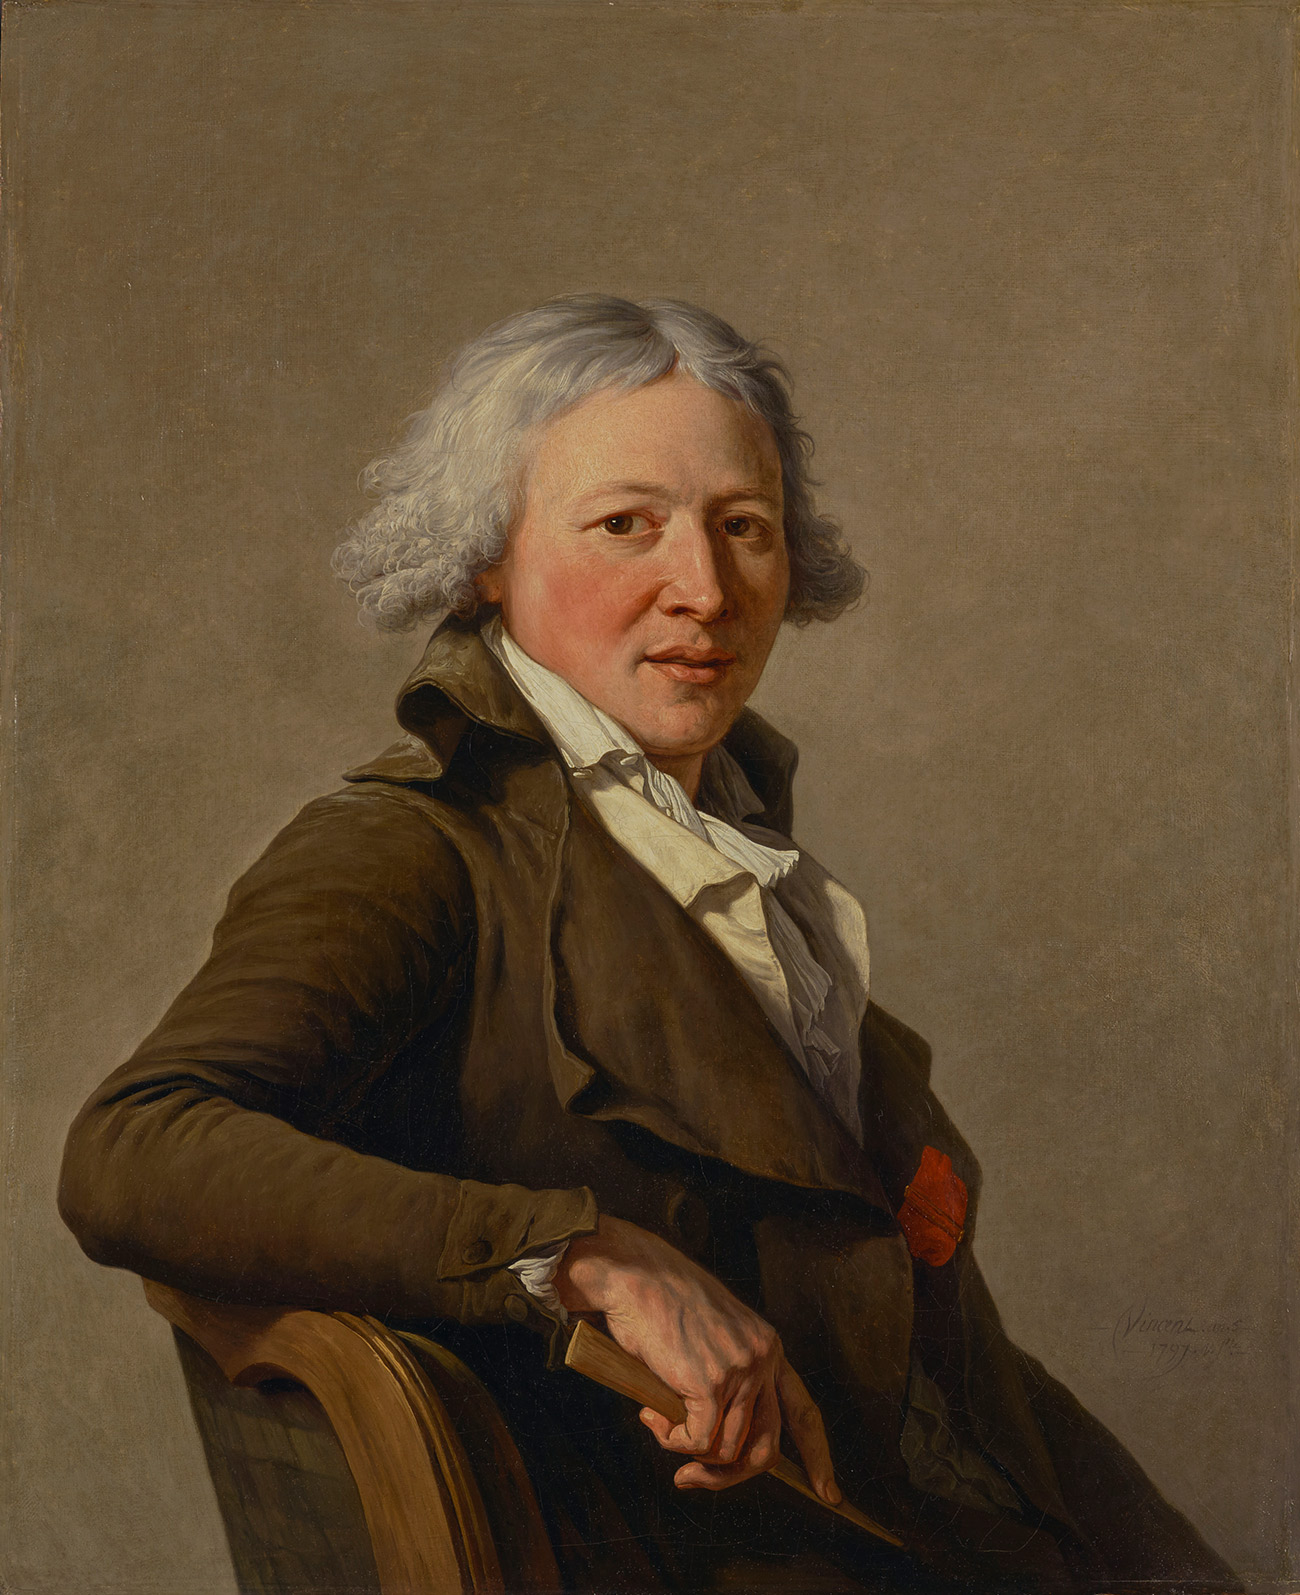 Upper body portrait of a seated, gray-haired man wearing a brown coat and white shirt and ascot.